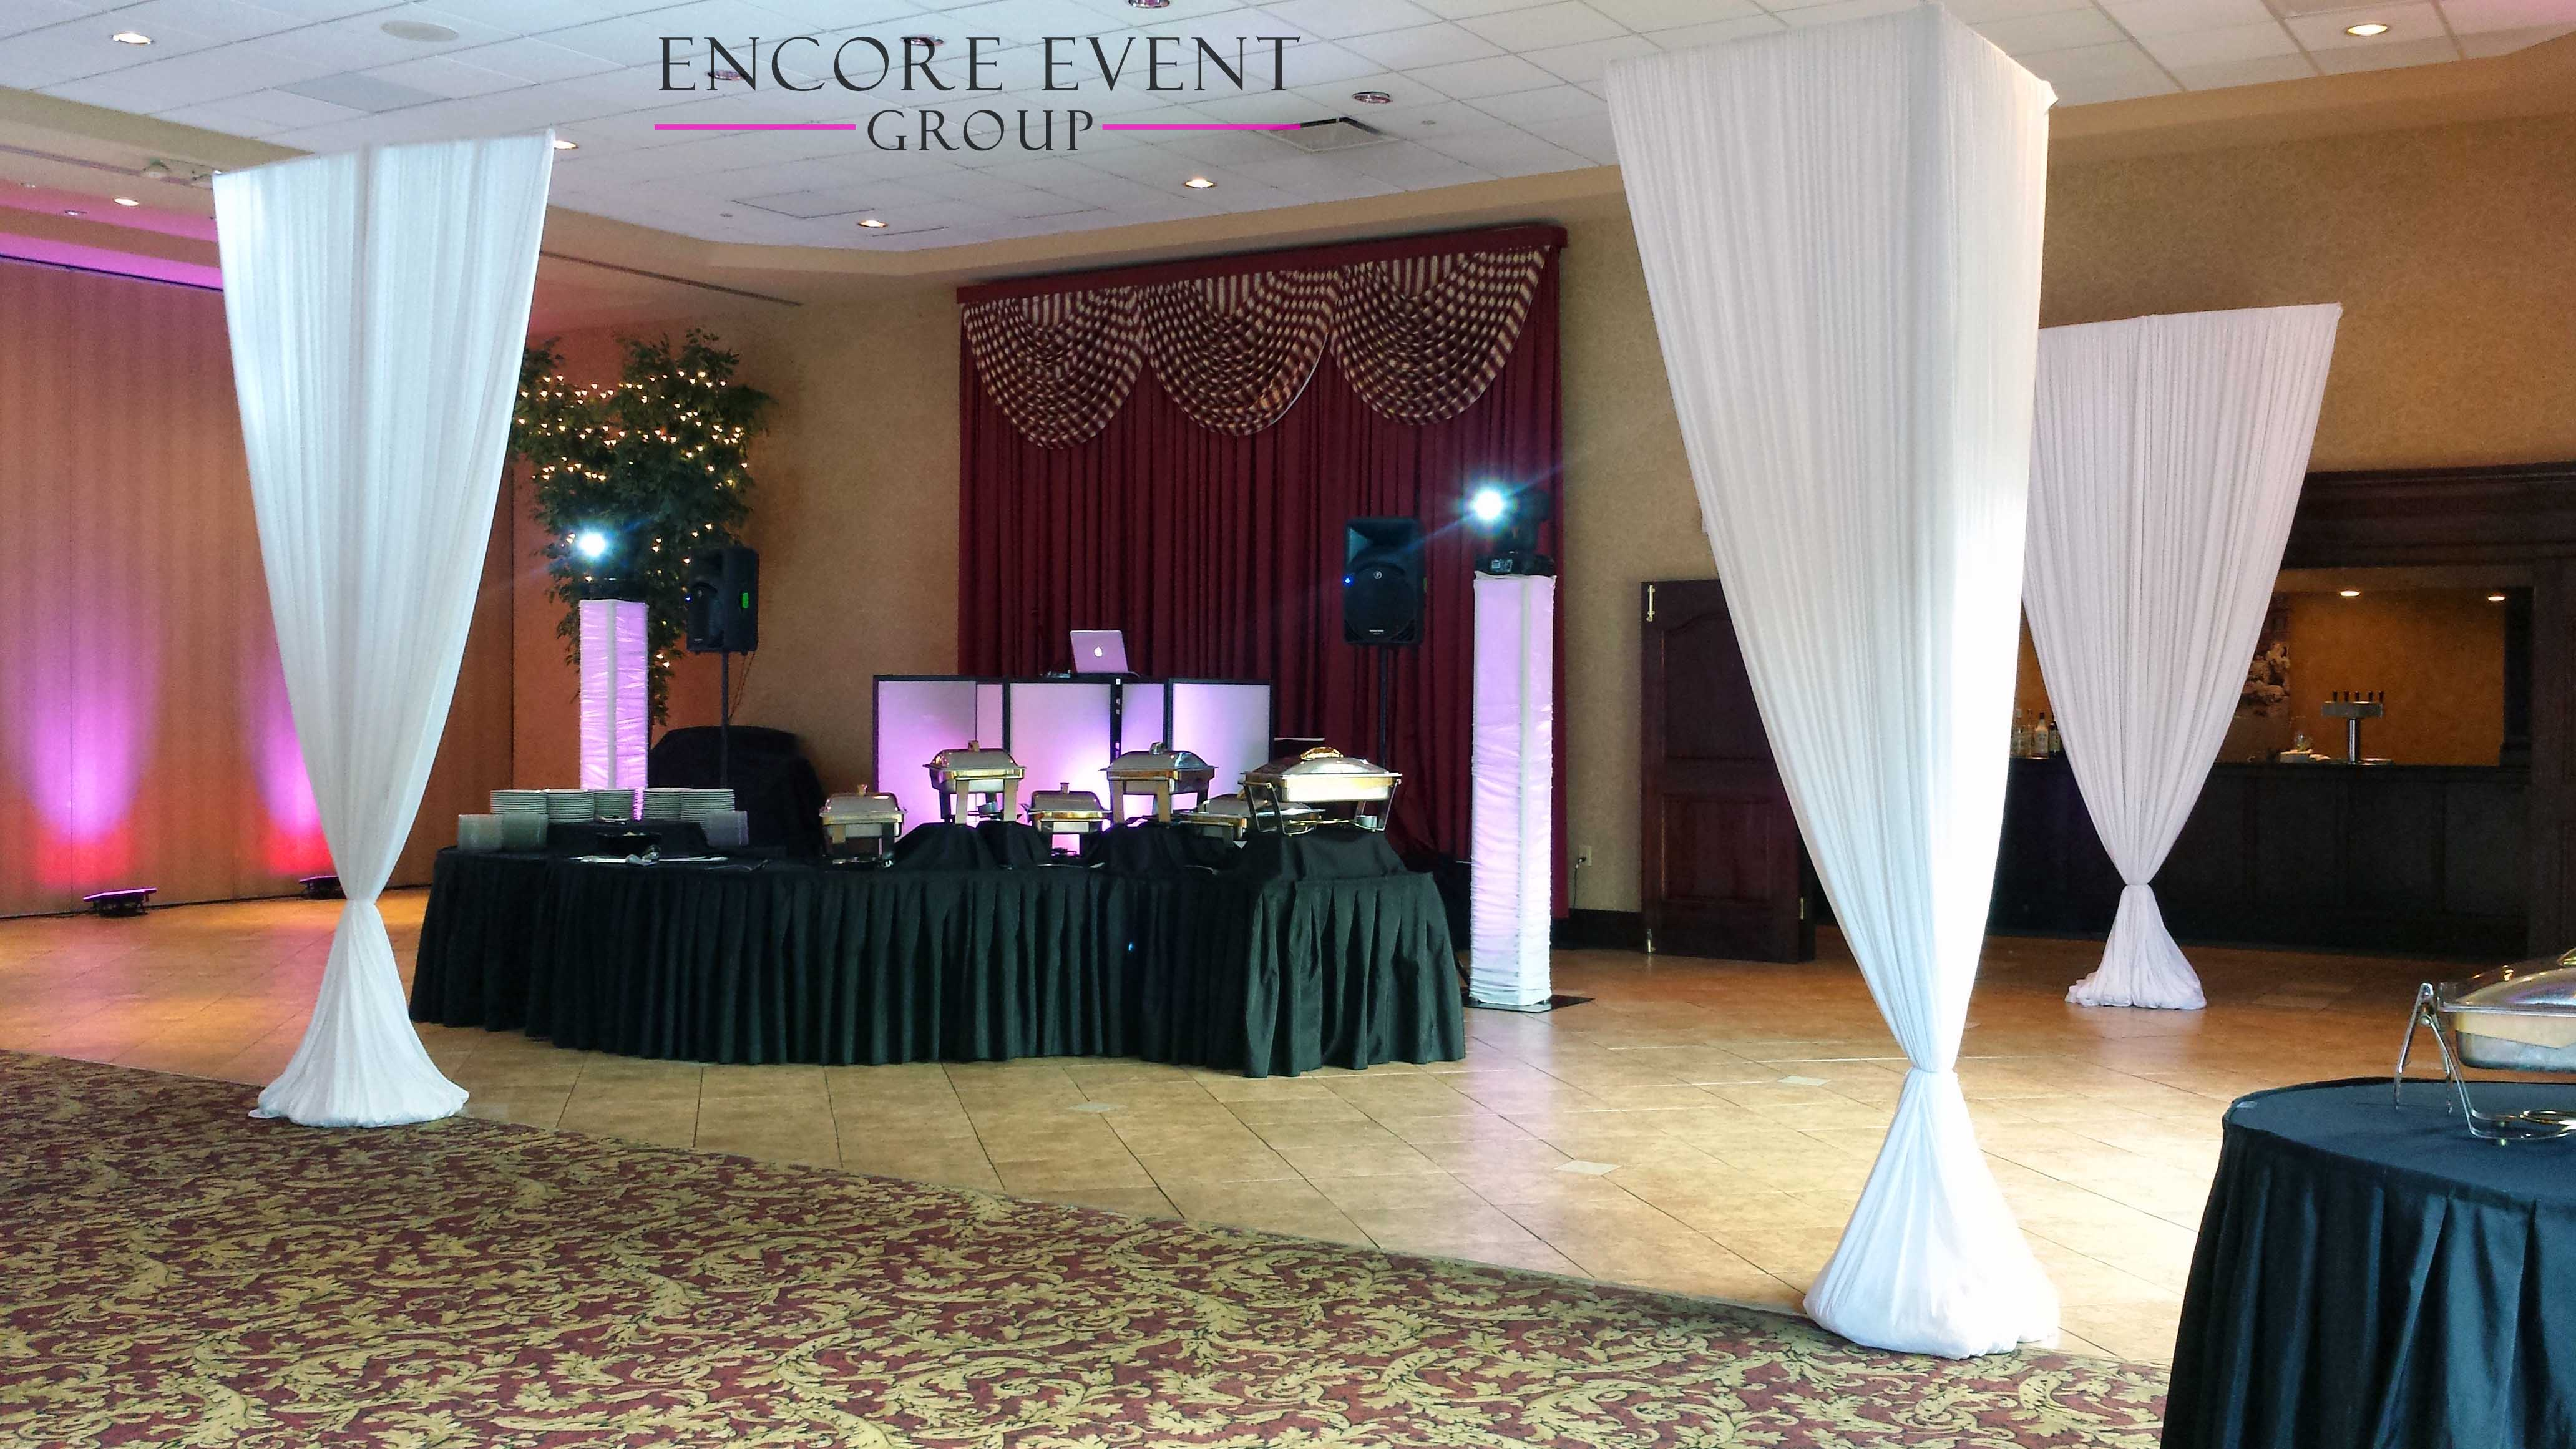 ceremony services provided country and draping pipe club fabrication event westwood drapes wedding events drape